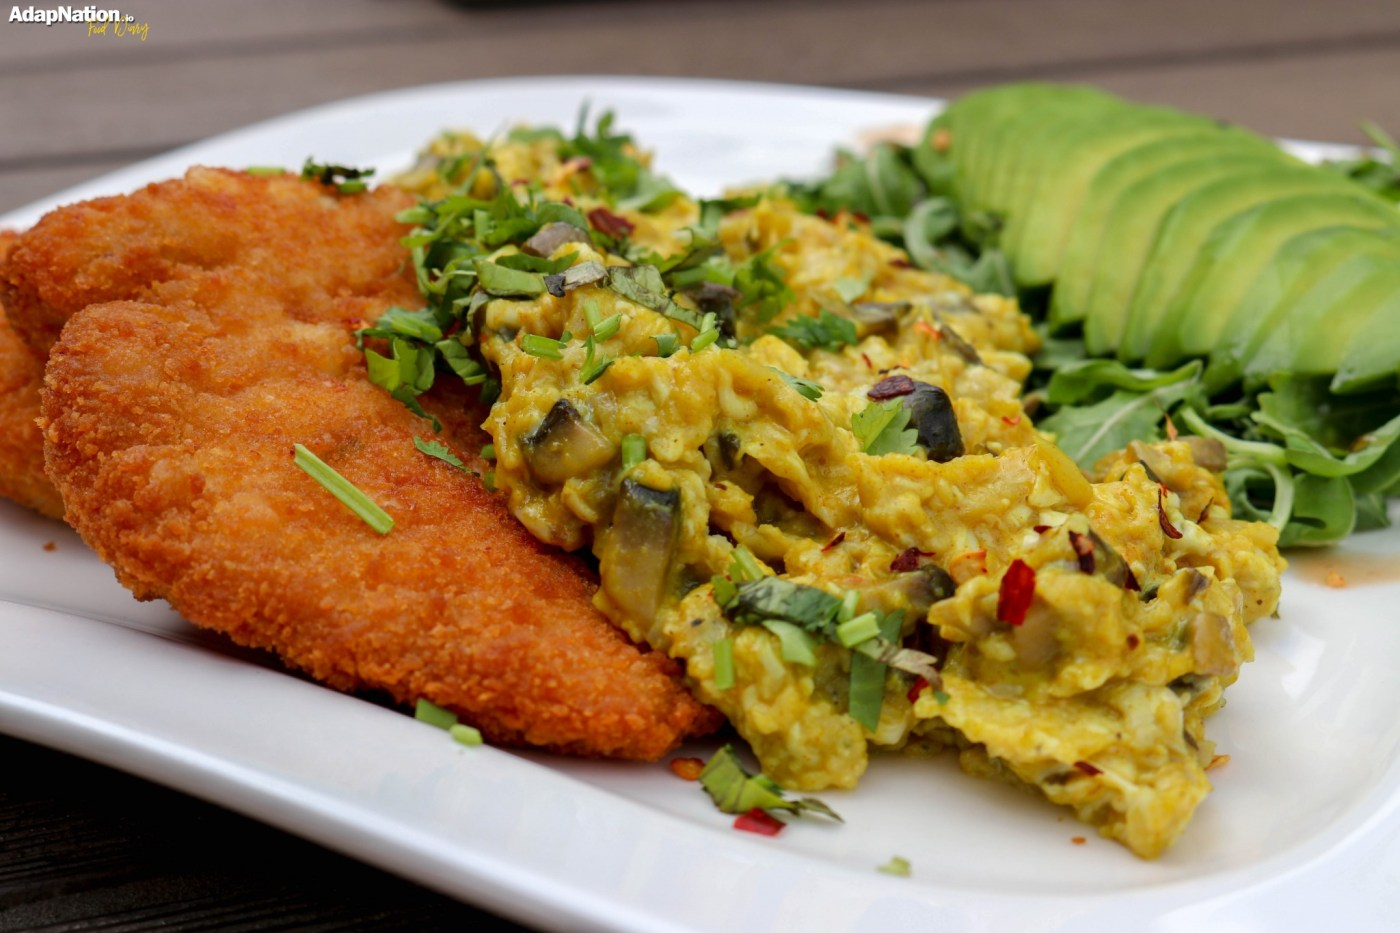 Eggs-A-La-Michelle, with Chicken Schnitzel, Avo and Rocket Salad